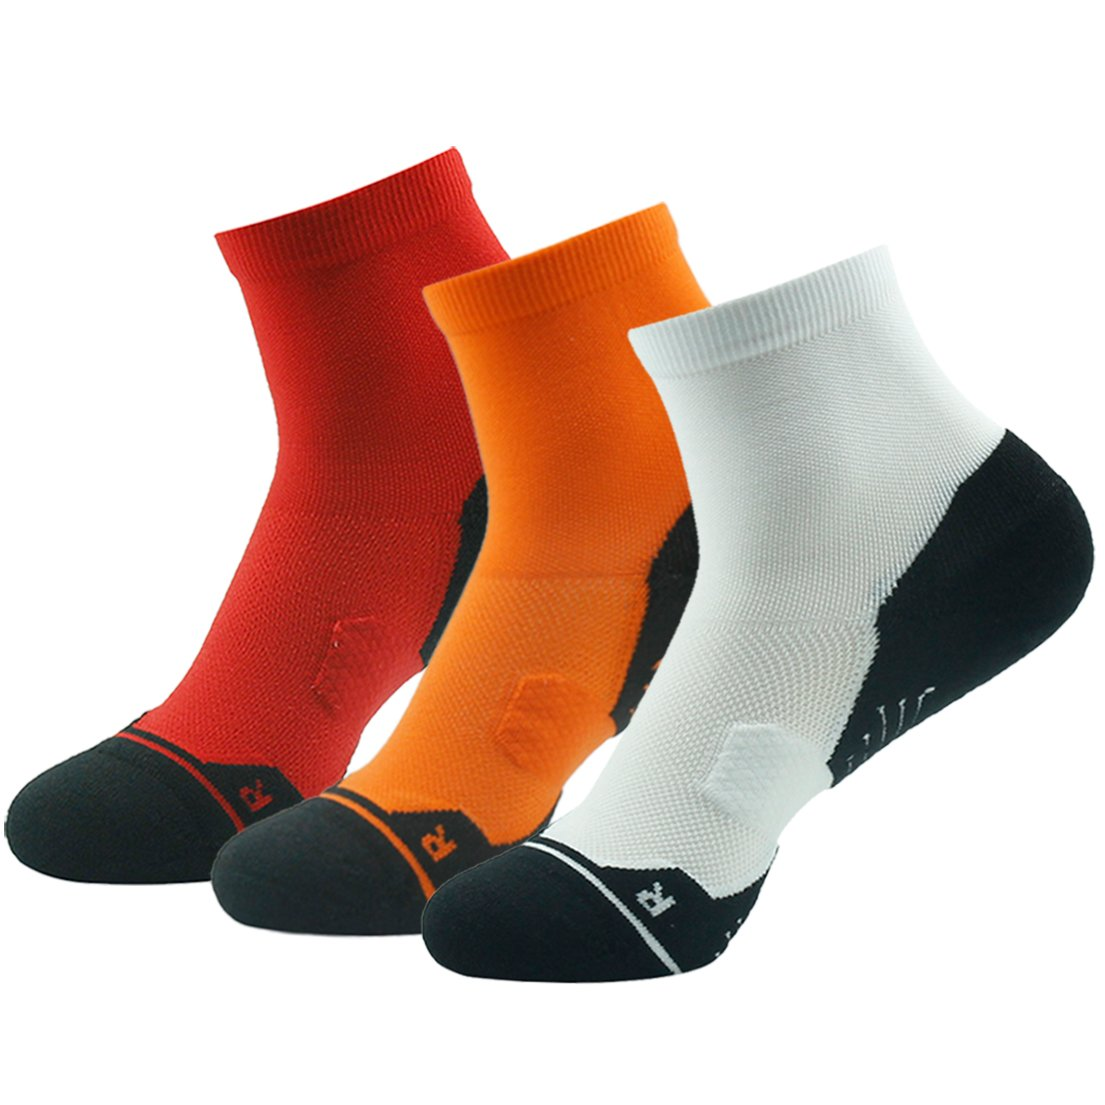 Z3 Pair orange&white&red Running Socks Support, HUSO Men Women High Performance Arch Compression Cushioned Quarter Socks 1,2,3,4,6 Pairs